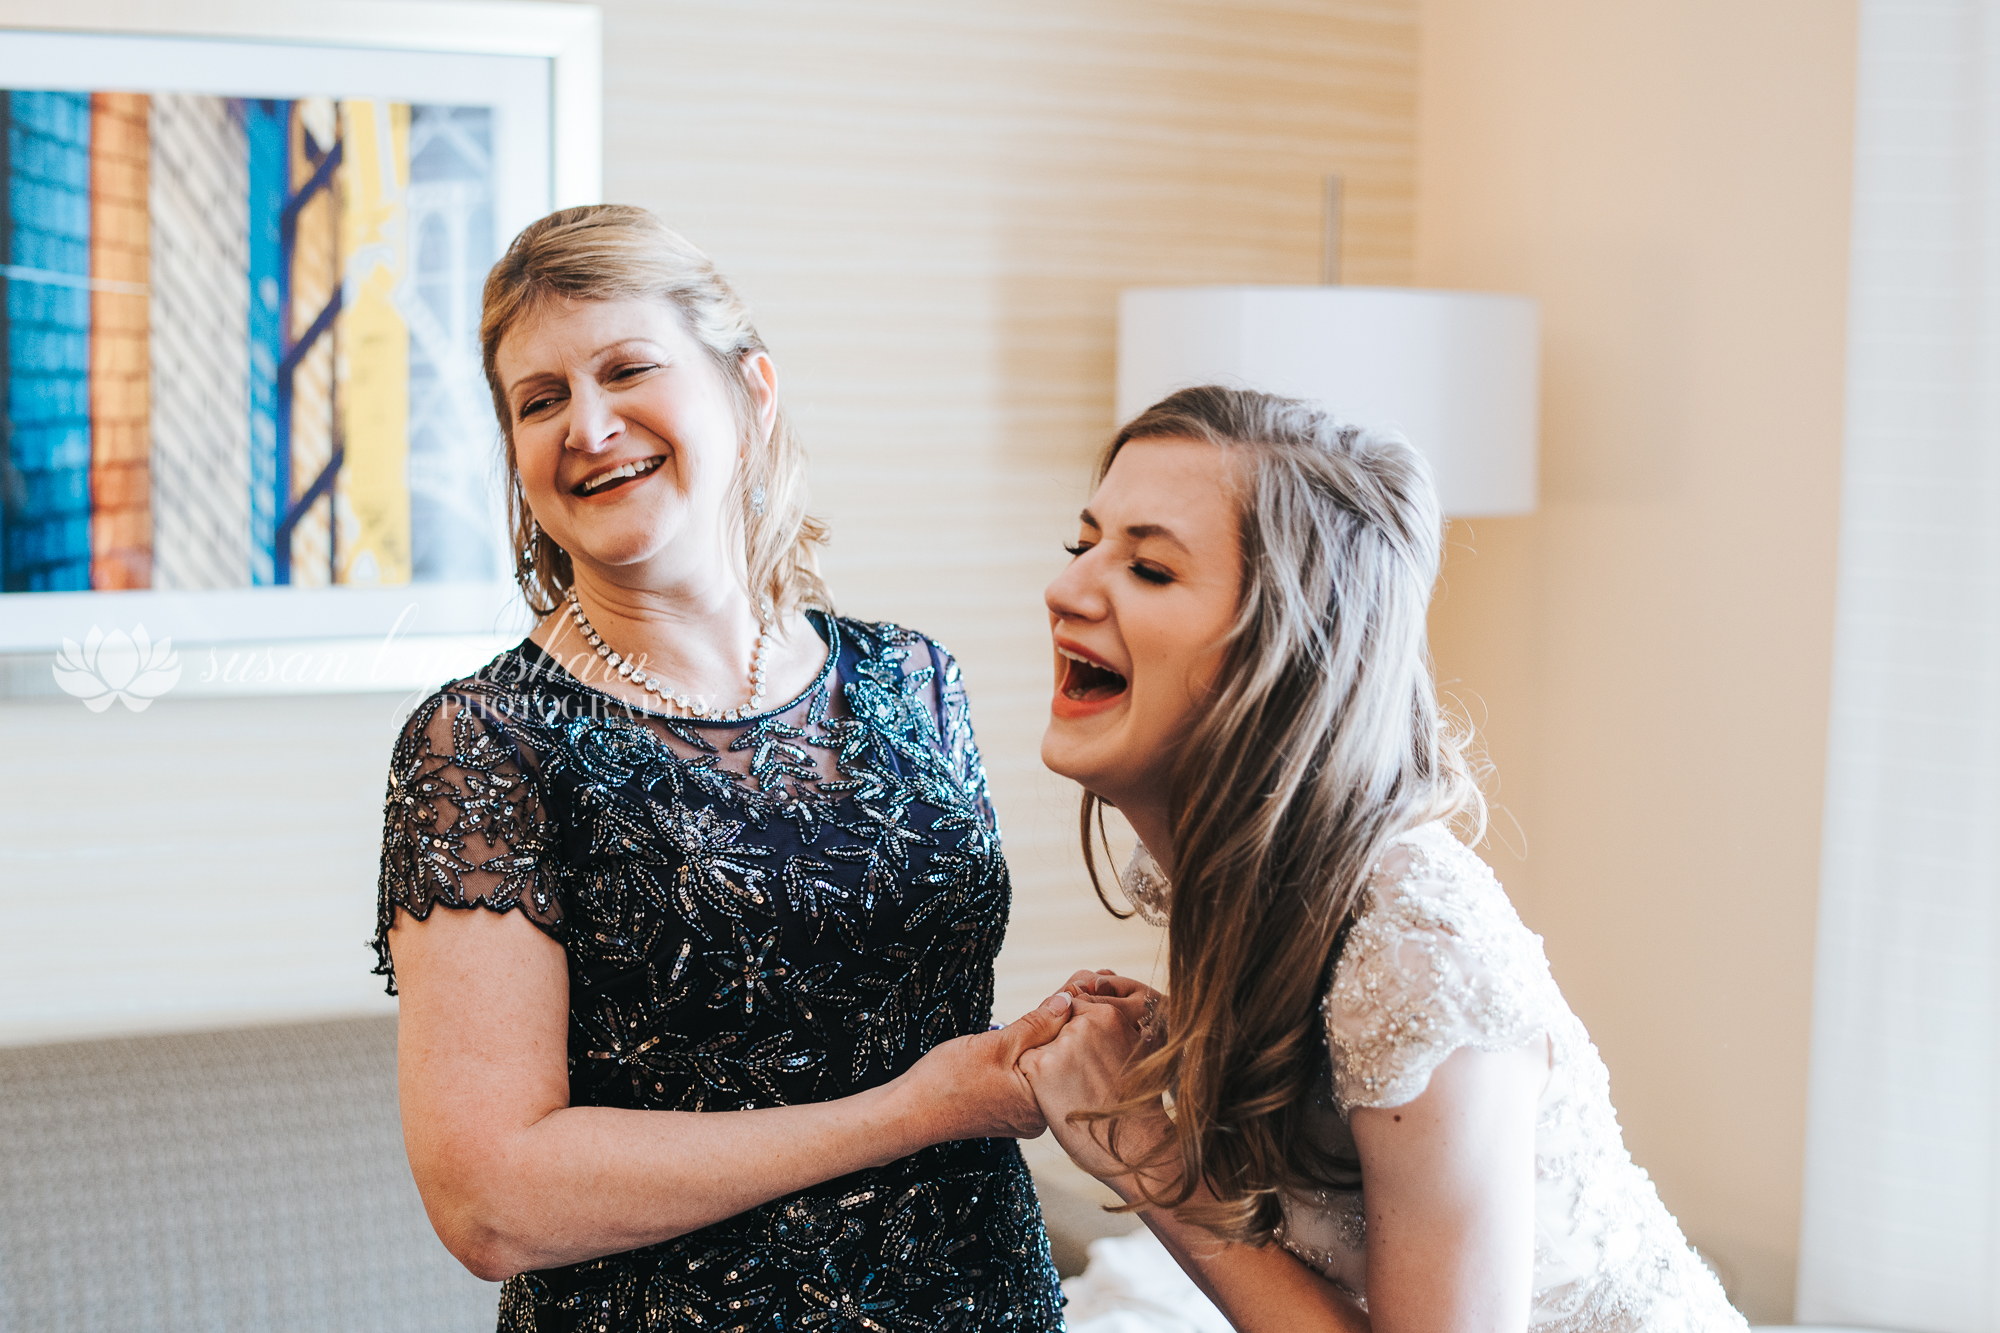 Chynna and John Wedding 05-18-2019 SLY Photography-24.jpg